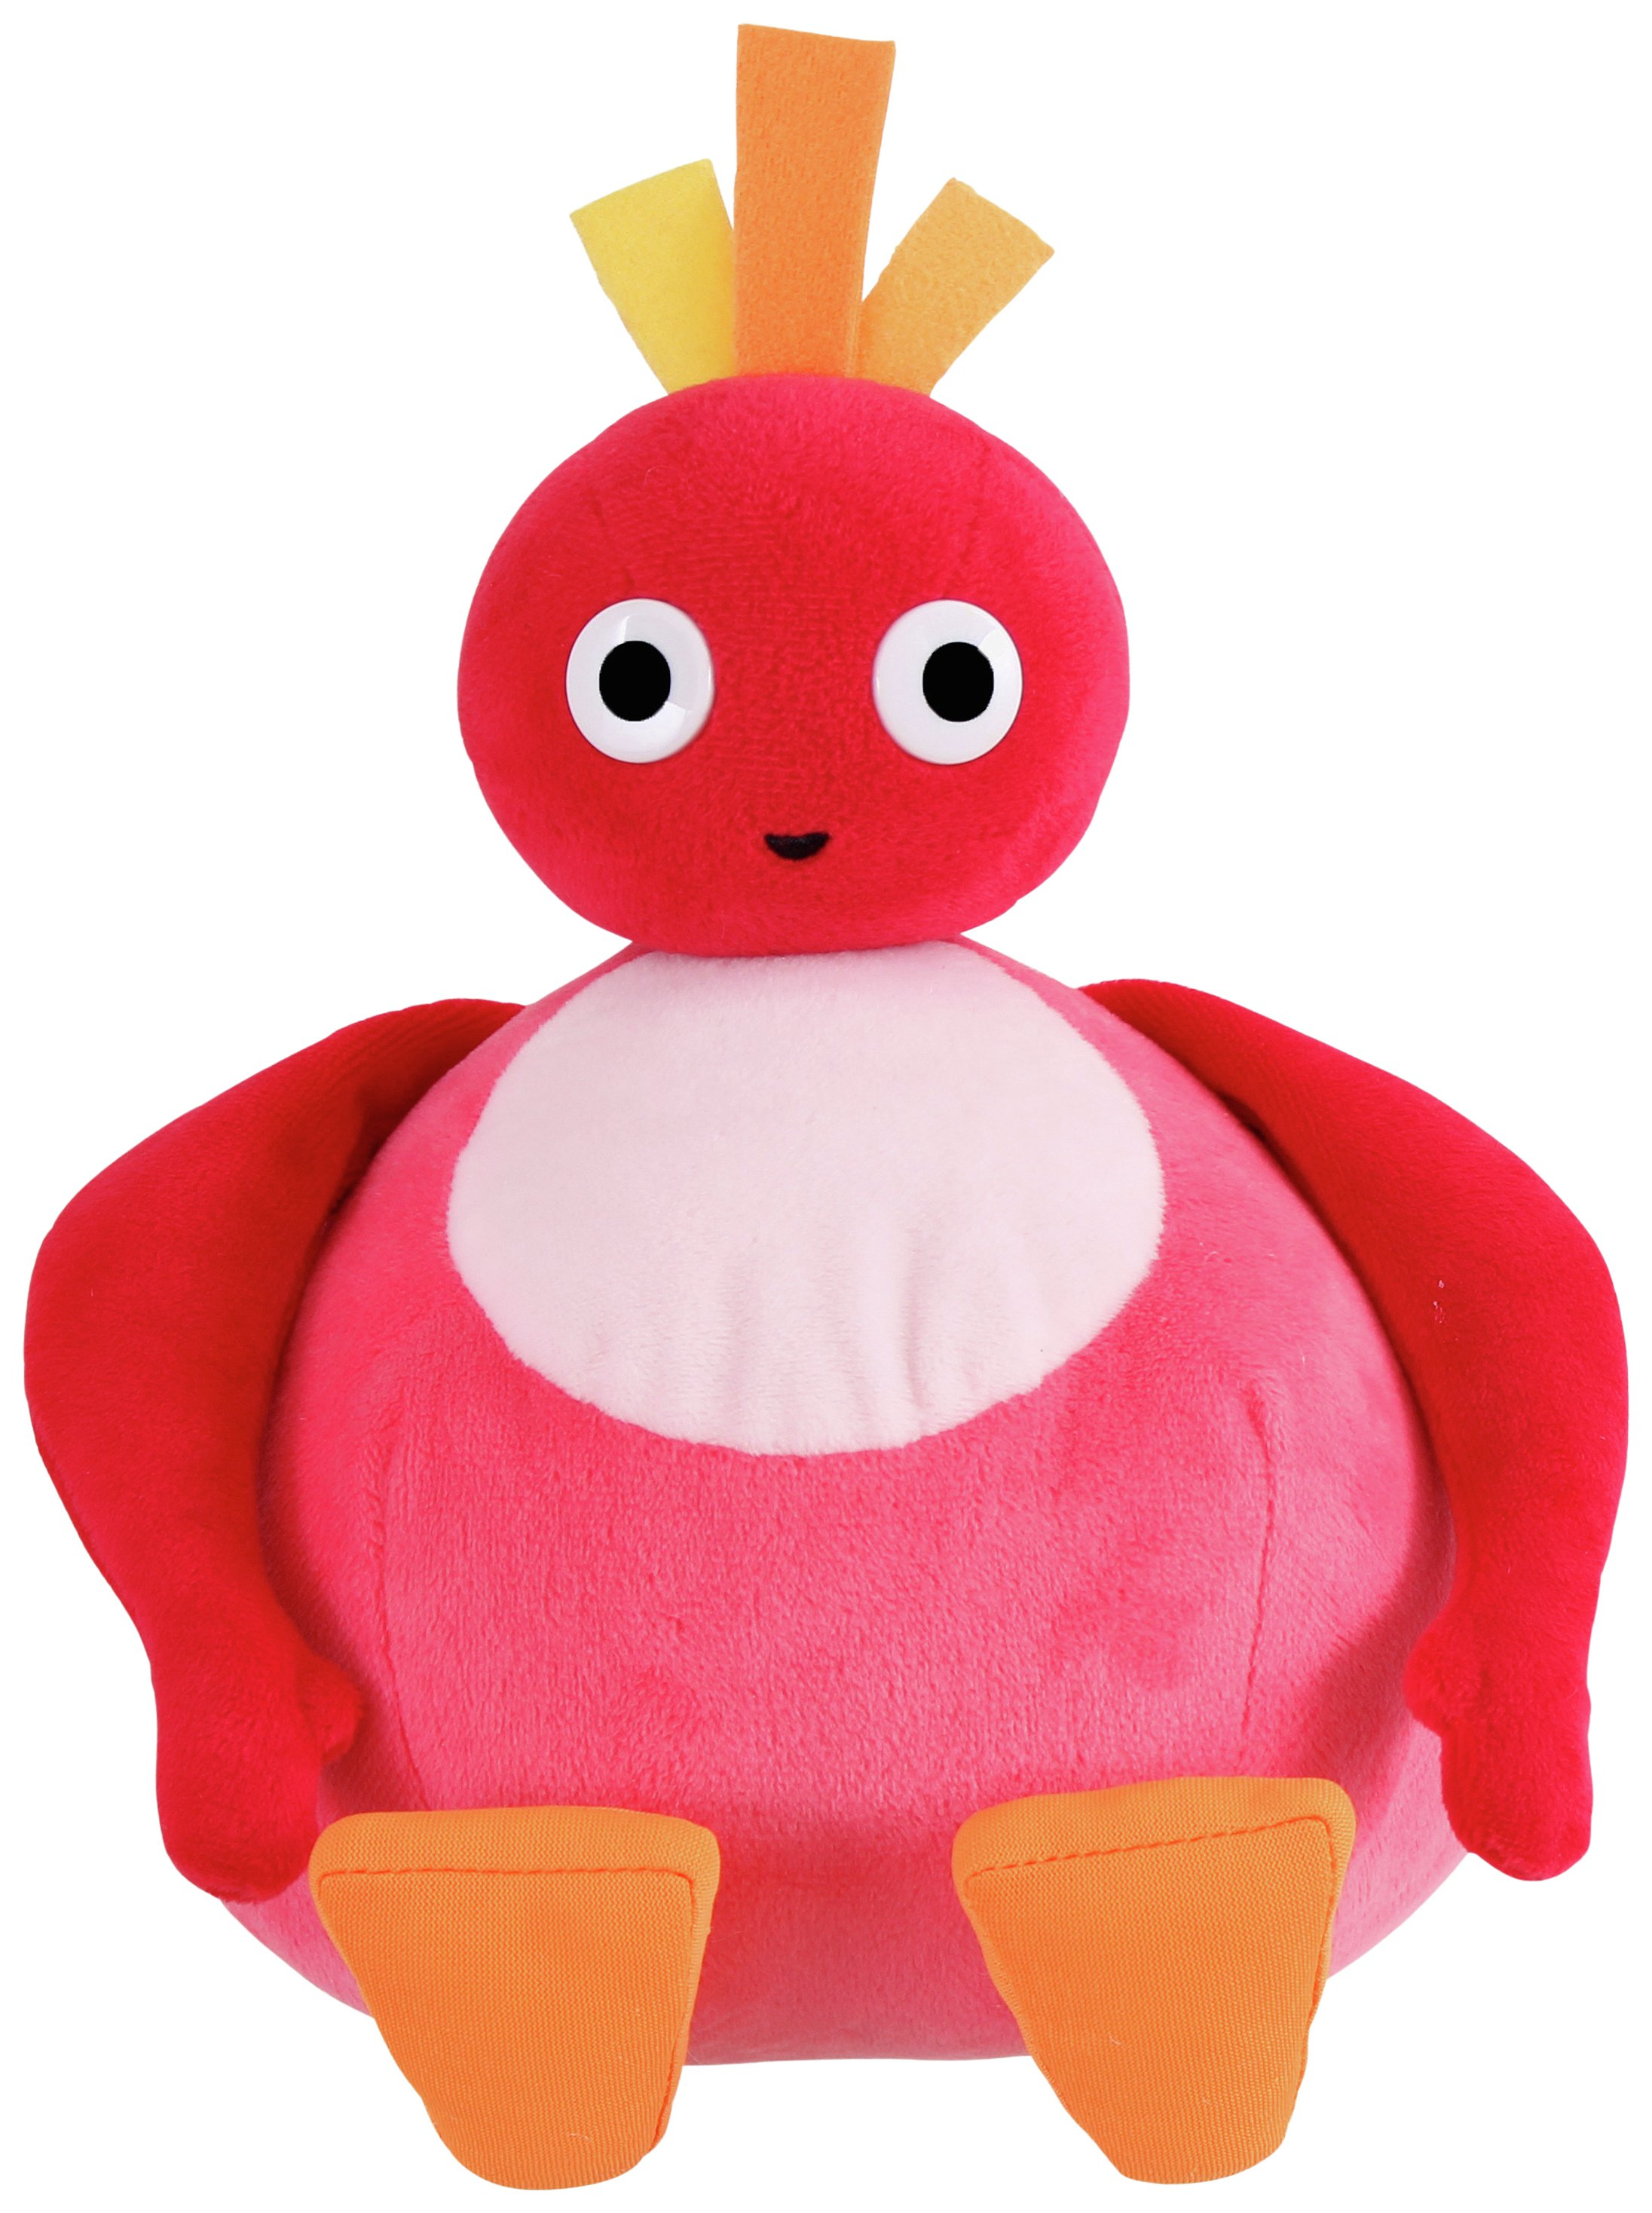 Squishy Mushy Argos : Twirlywoos Talking Toodloo Soft Toy Gay Times UK ?10.99